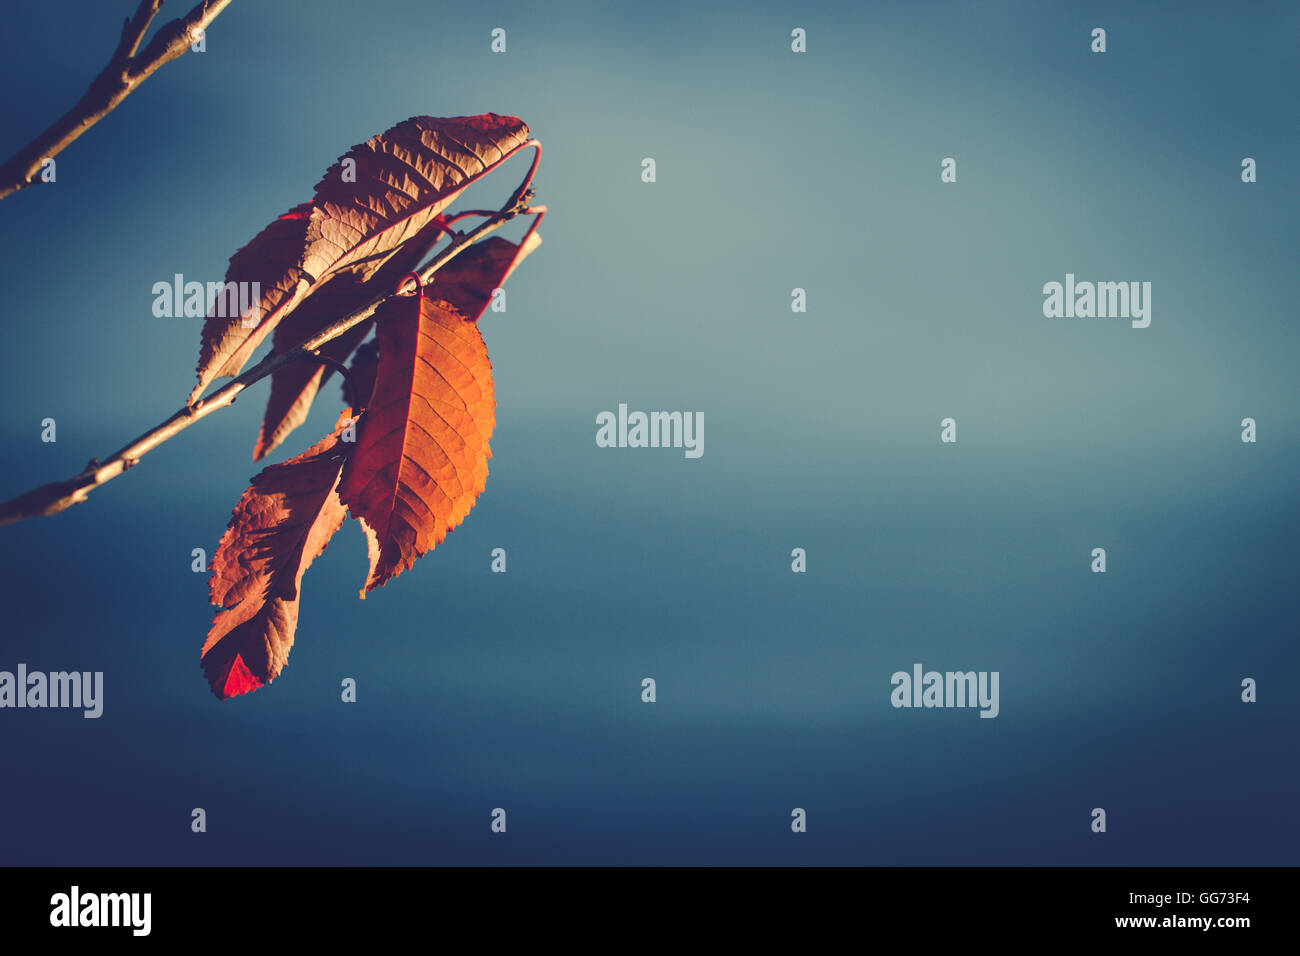 brown cherry leaves on a branch with blue background - Stock Image